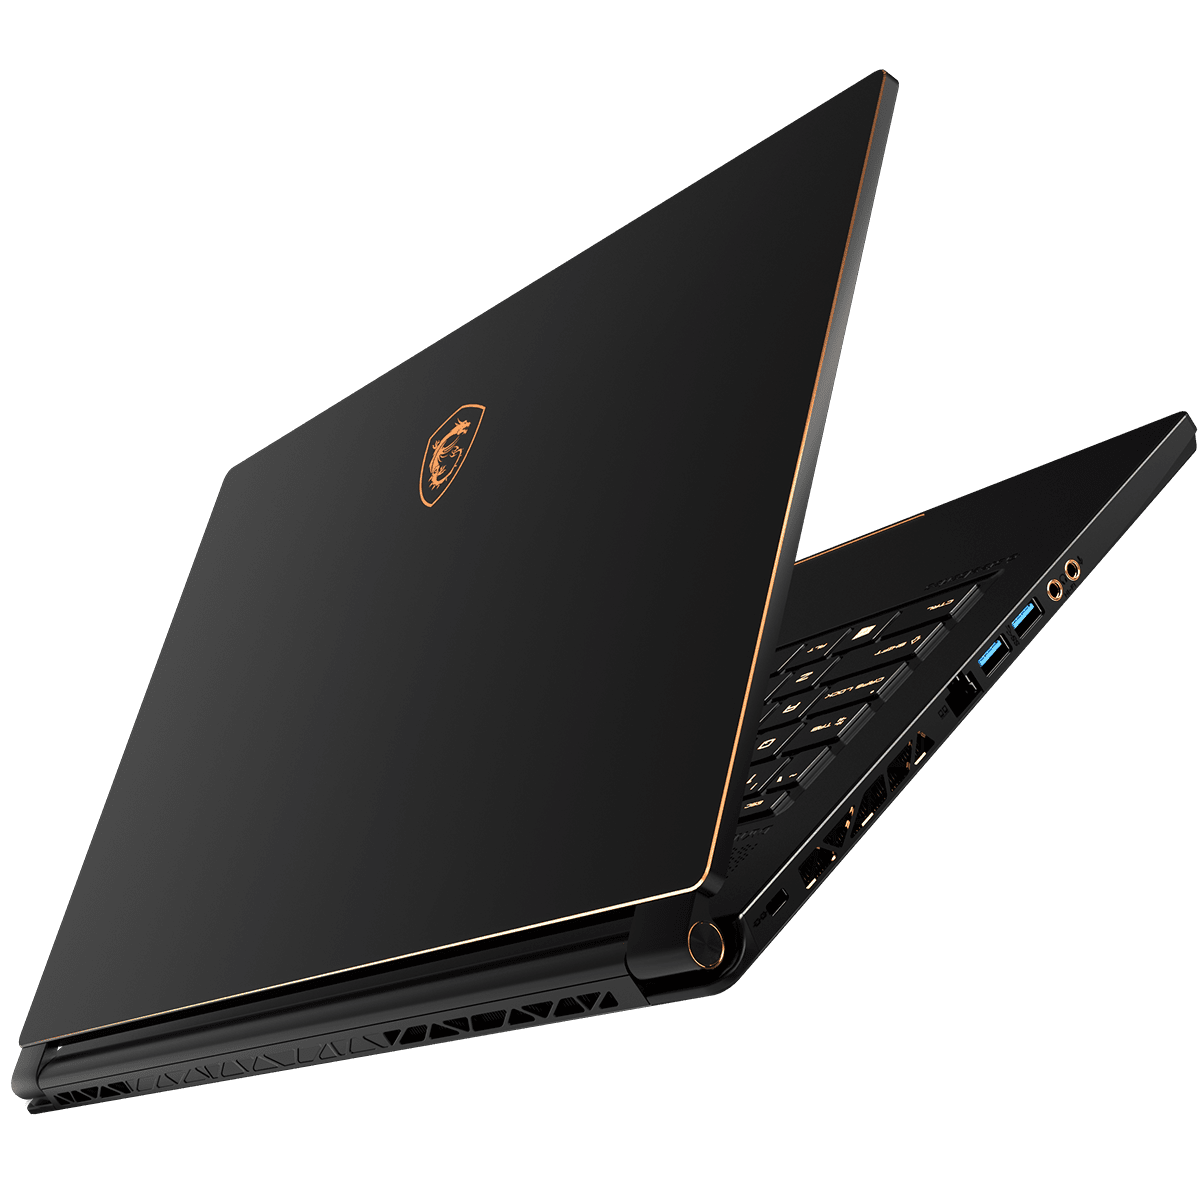 MSI GS65 Stealth-420 Gaming Laptop